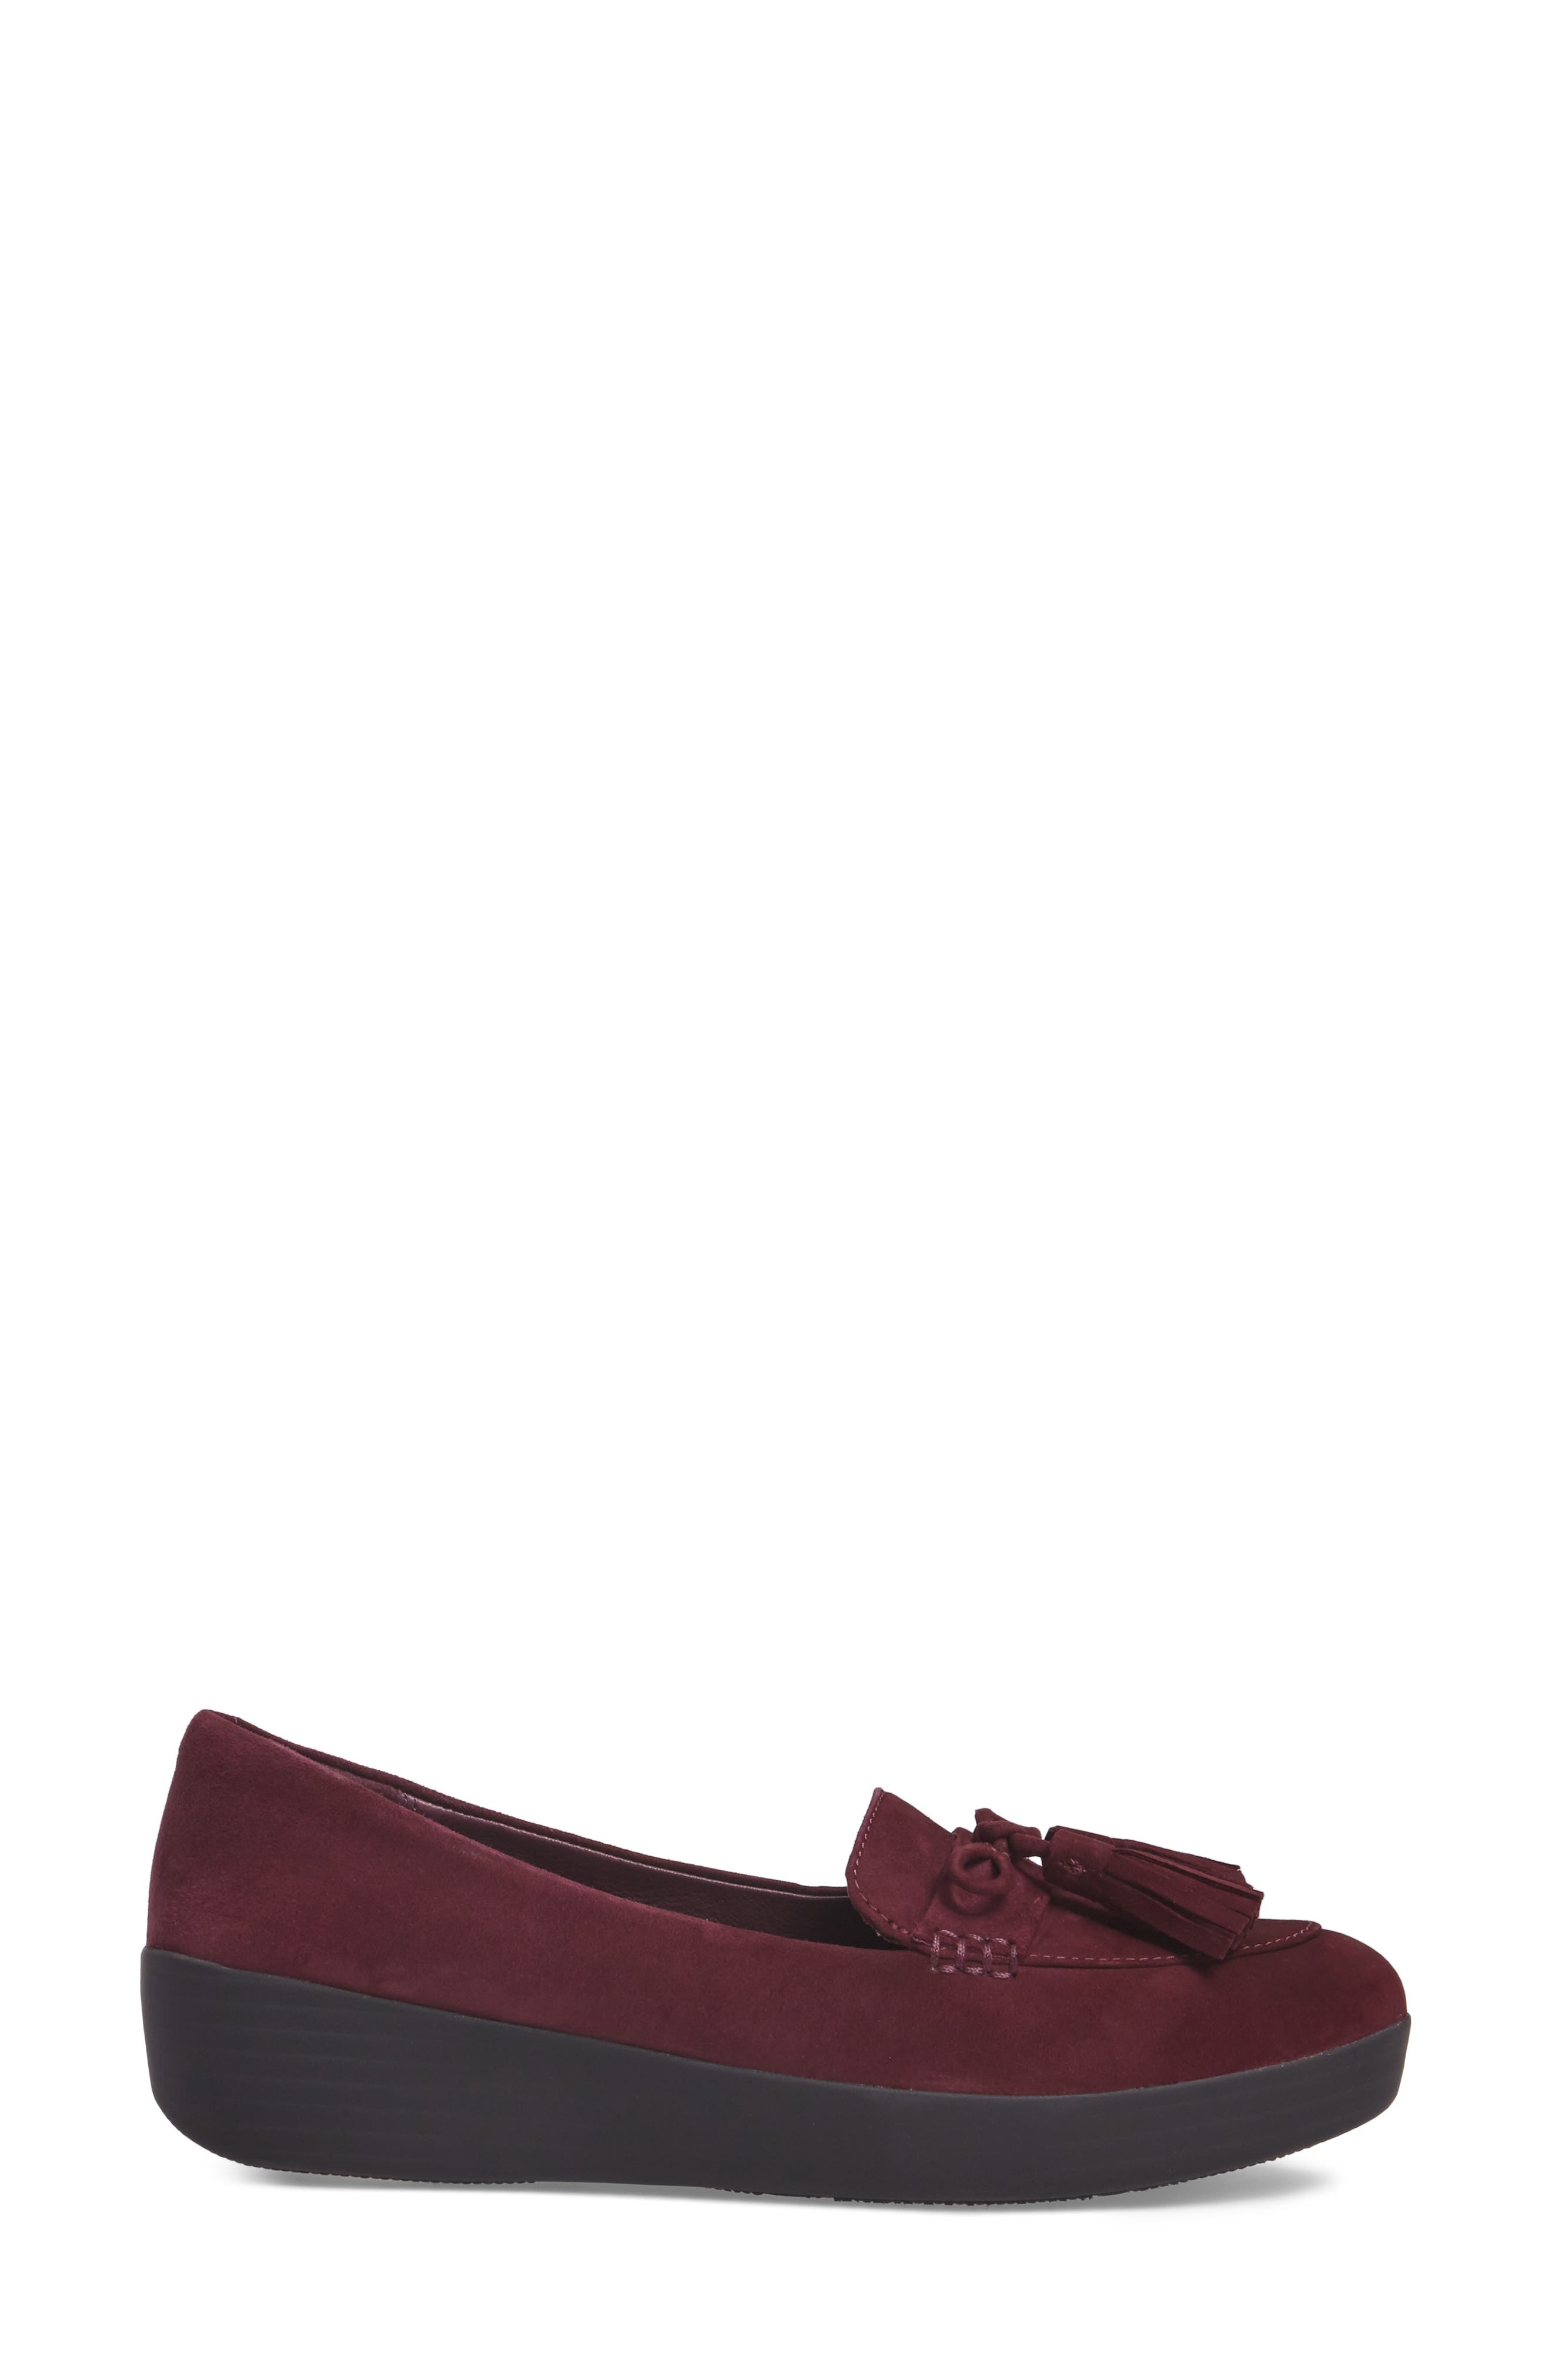 Tassel Bow Sneakerloafer<sup>™</sup> Water Repellent Flat,                             Alternate thumbnail 12, color,